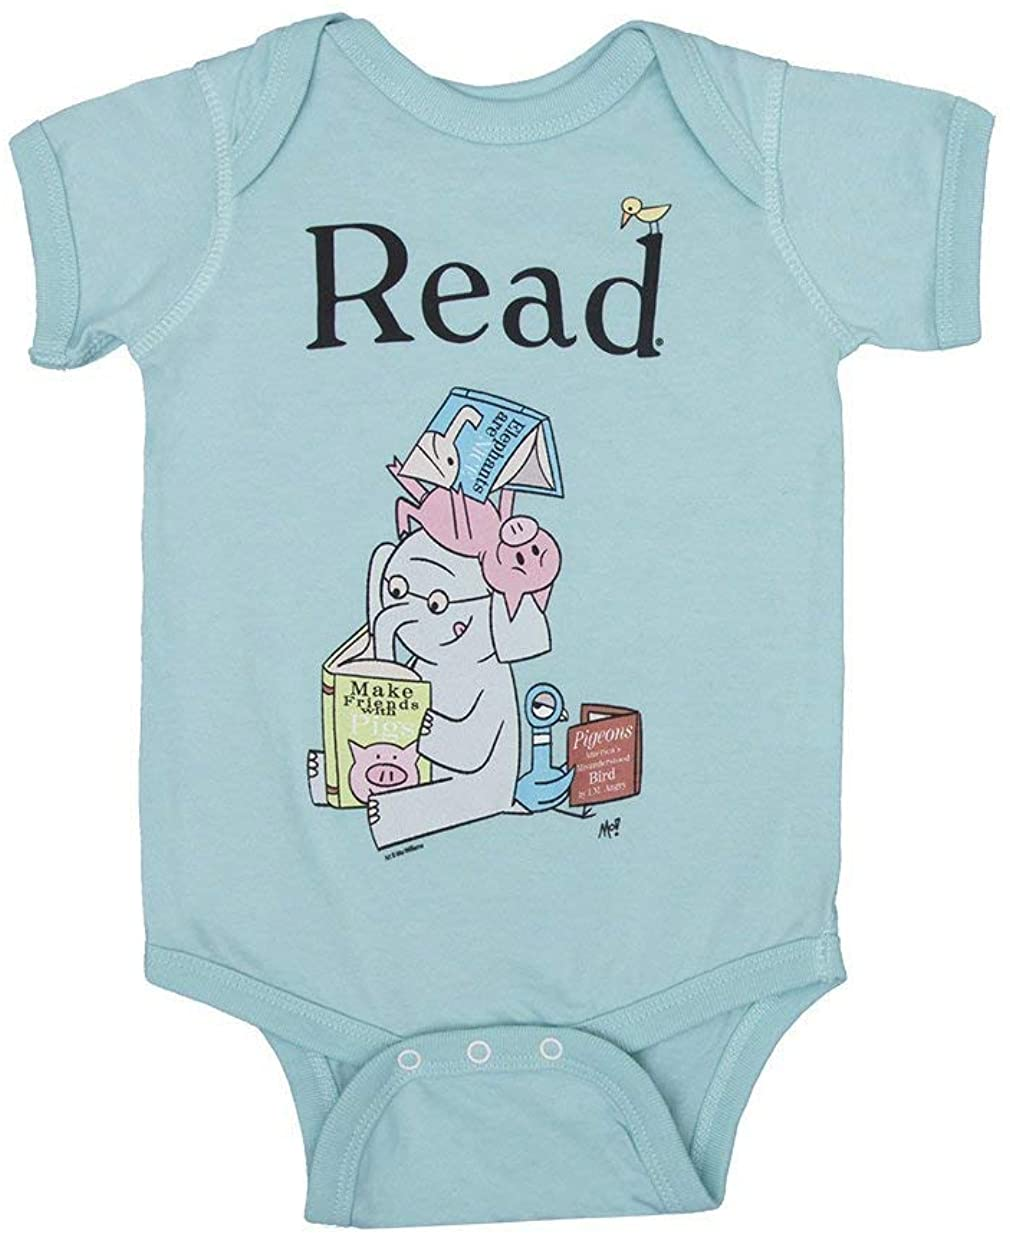 Out of Print Elephant & Piggie Read Baby Bodysuit 24 Months